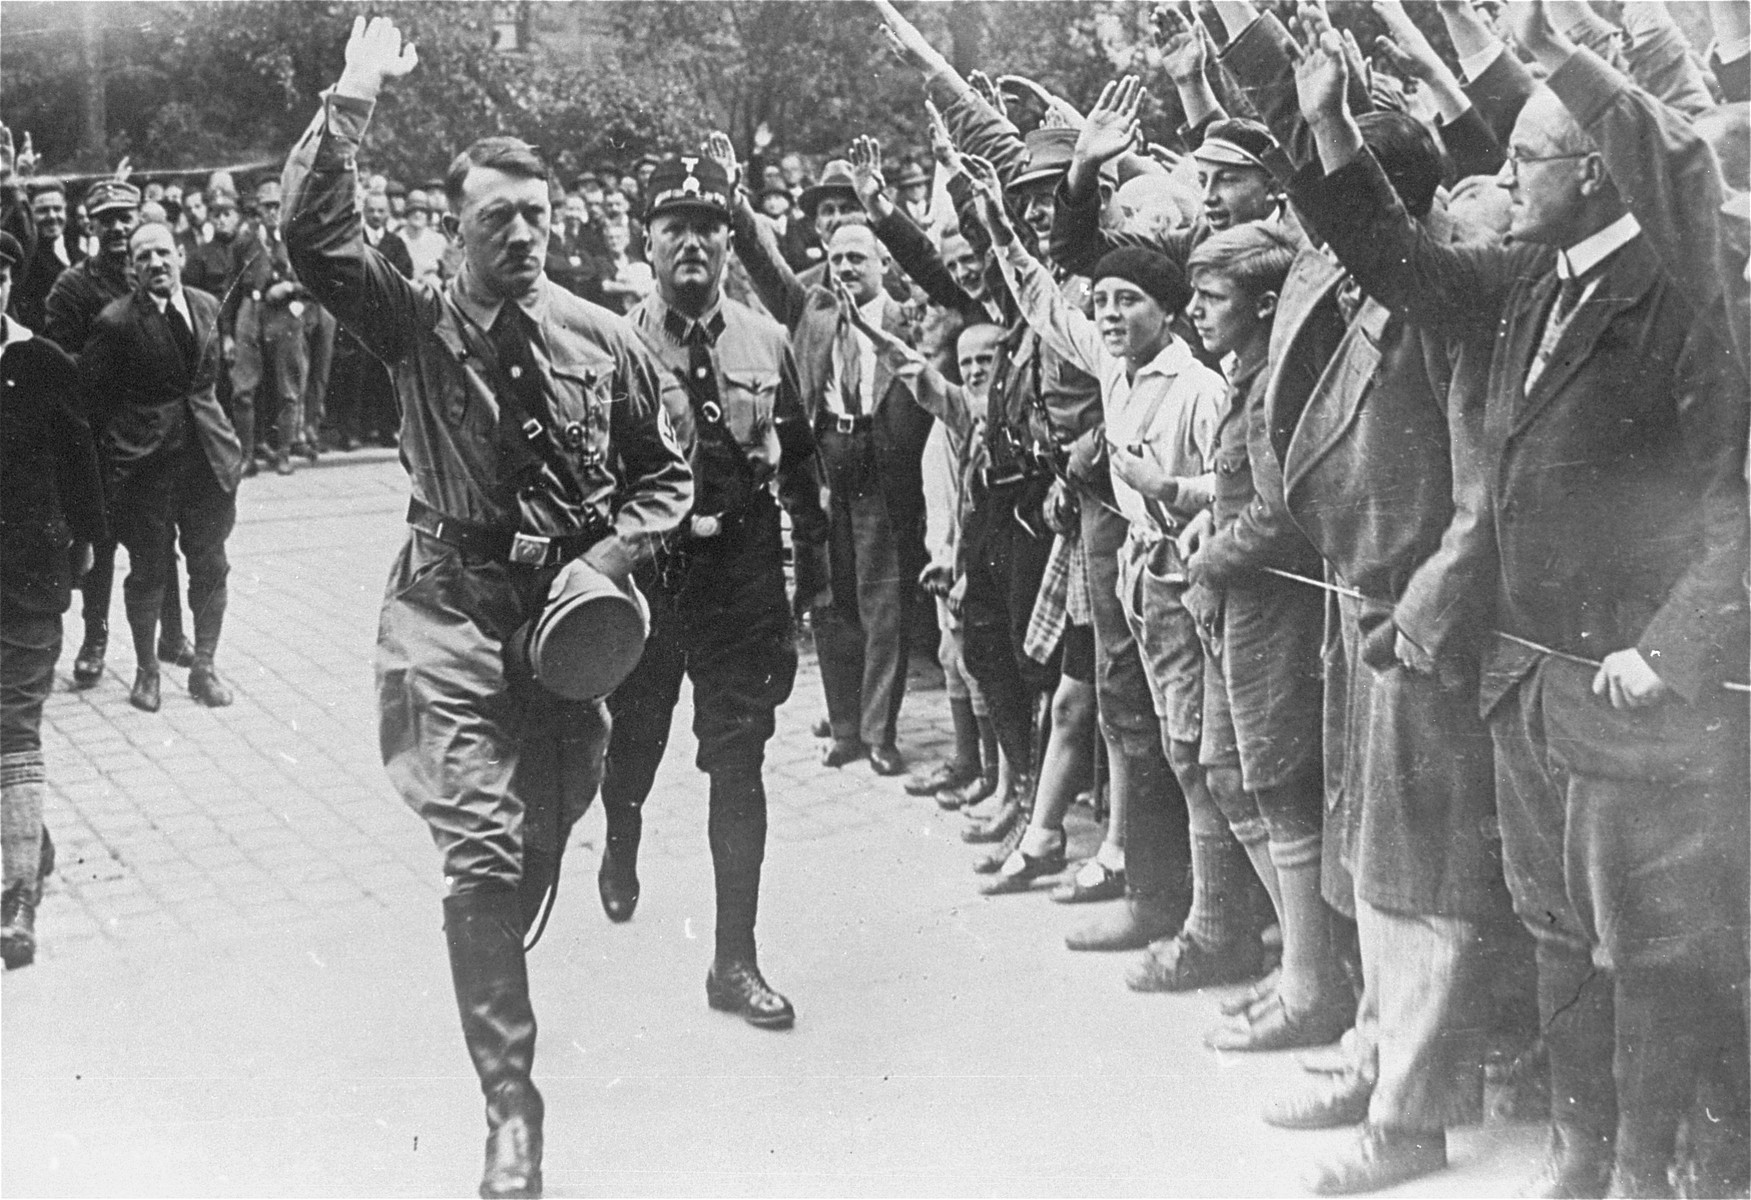 Followed closely by an SS bodyguard, Adolf Hitler greets supporters at the fourth Nazi Party Congress in Nuremberg.